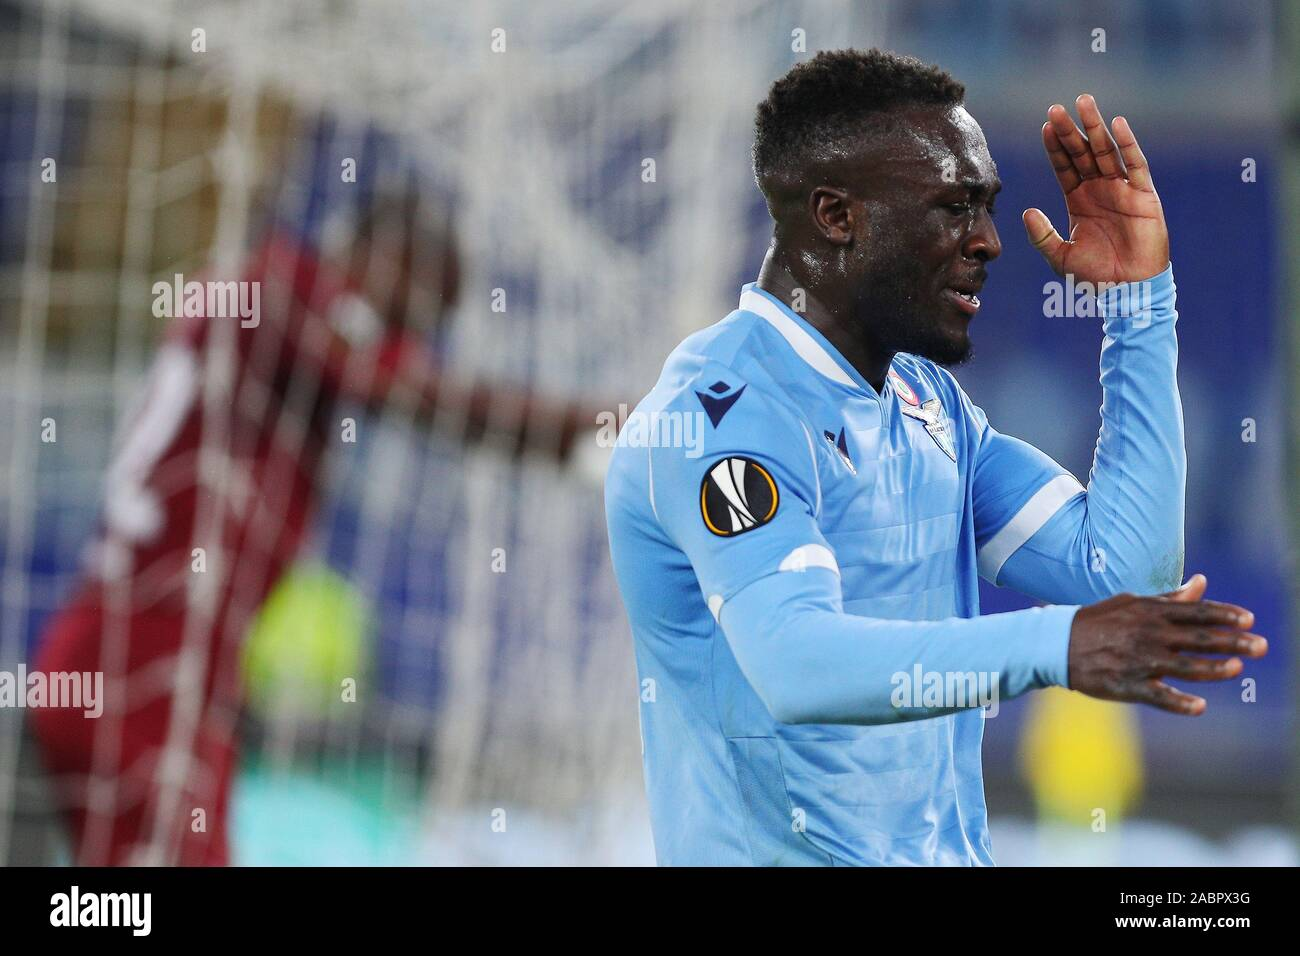 Bobby Adekanye of Lazio reacts during the UEFA Europa League, Group E football match between SS Lazio and CFR Cluj on November 28, 2019 at Stadio Olimpico in Rome, Italy - Photo Federico Proietti/ESPA-Images Stock Photo